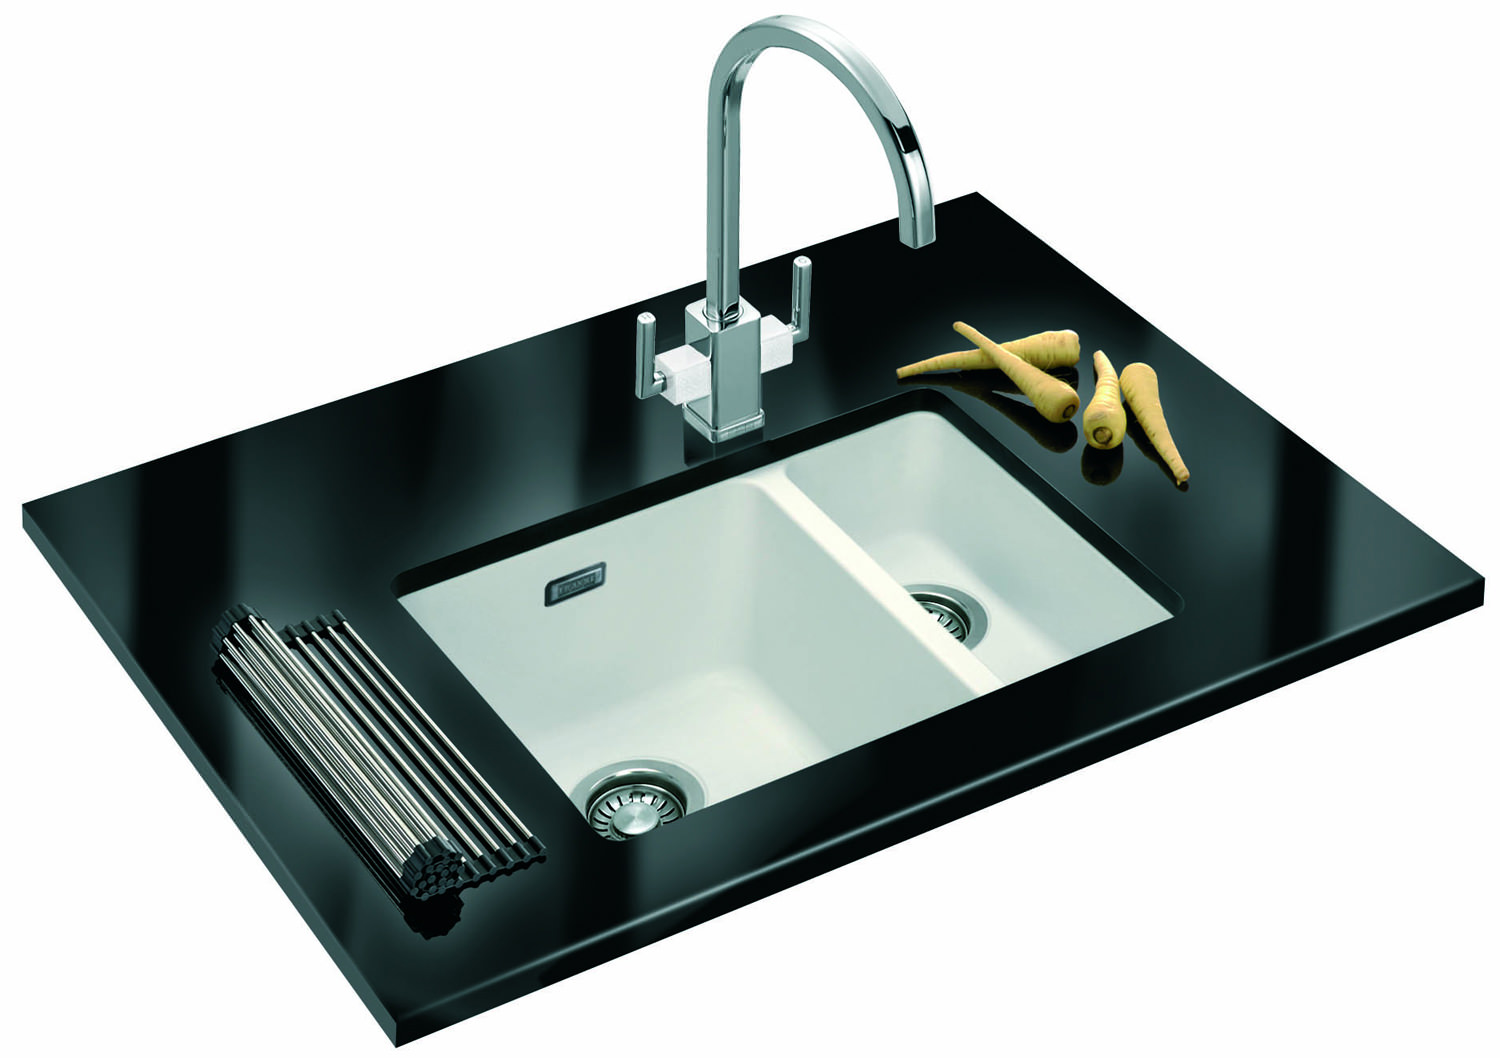 Franke Fragranite Undermount Sink : ... of Franke Kubus KBG 160 Fragranite White 1.5 Bowl Undermount Sink